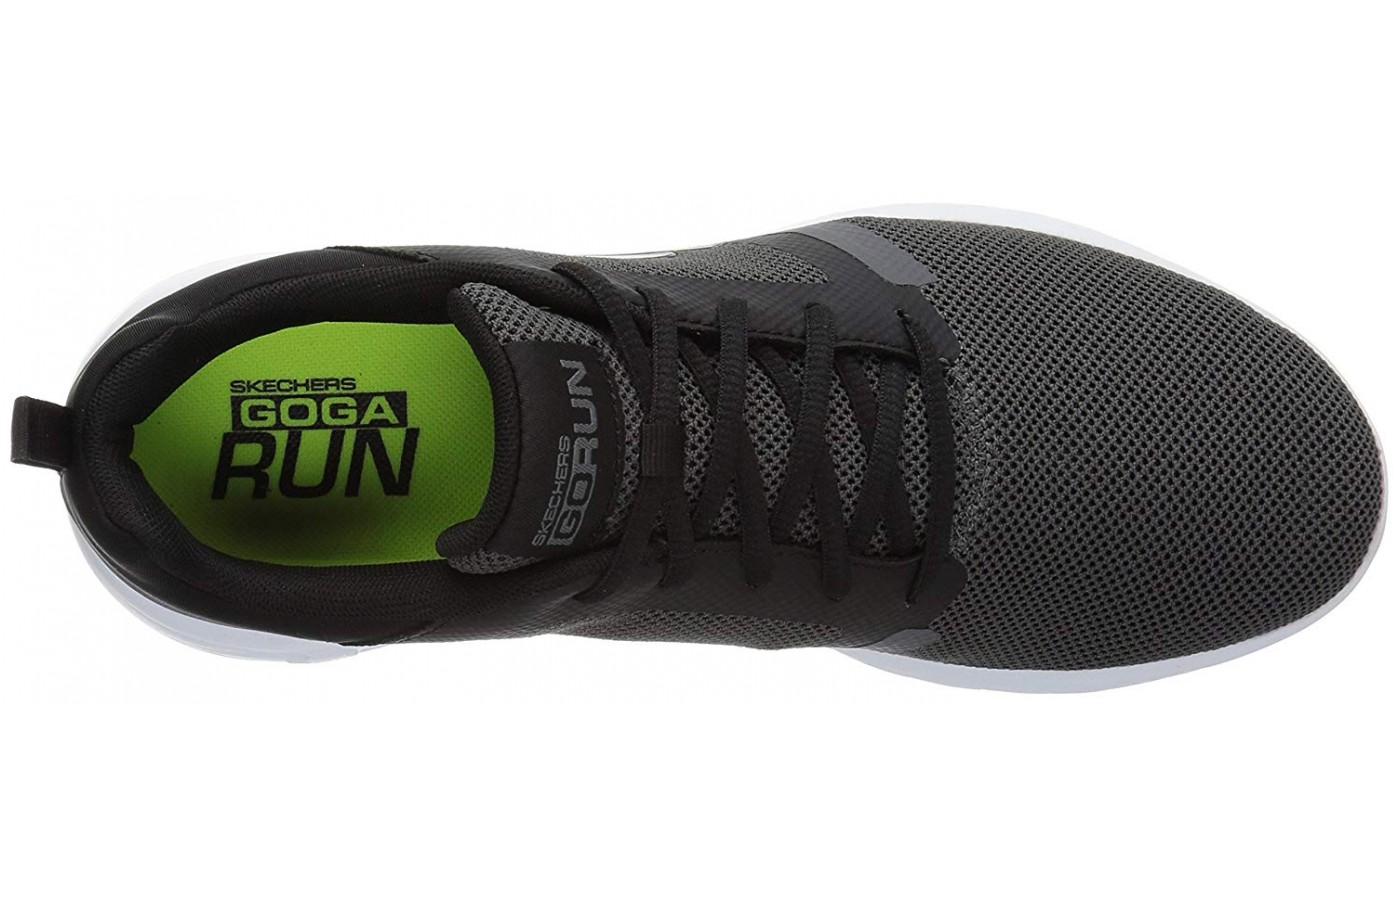 The Go Run 600 has a breathable mesh upper.